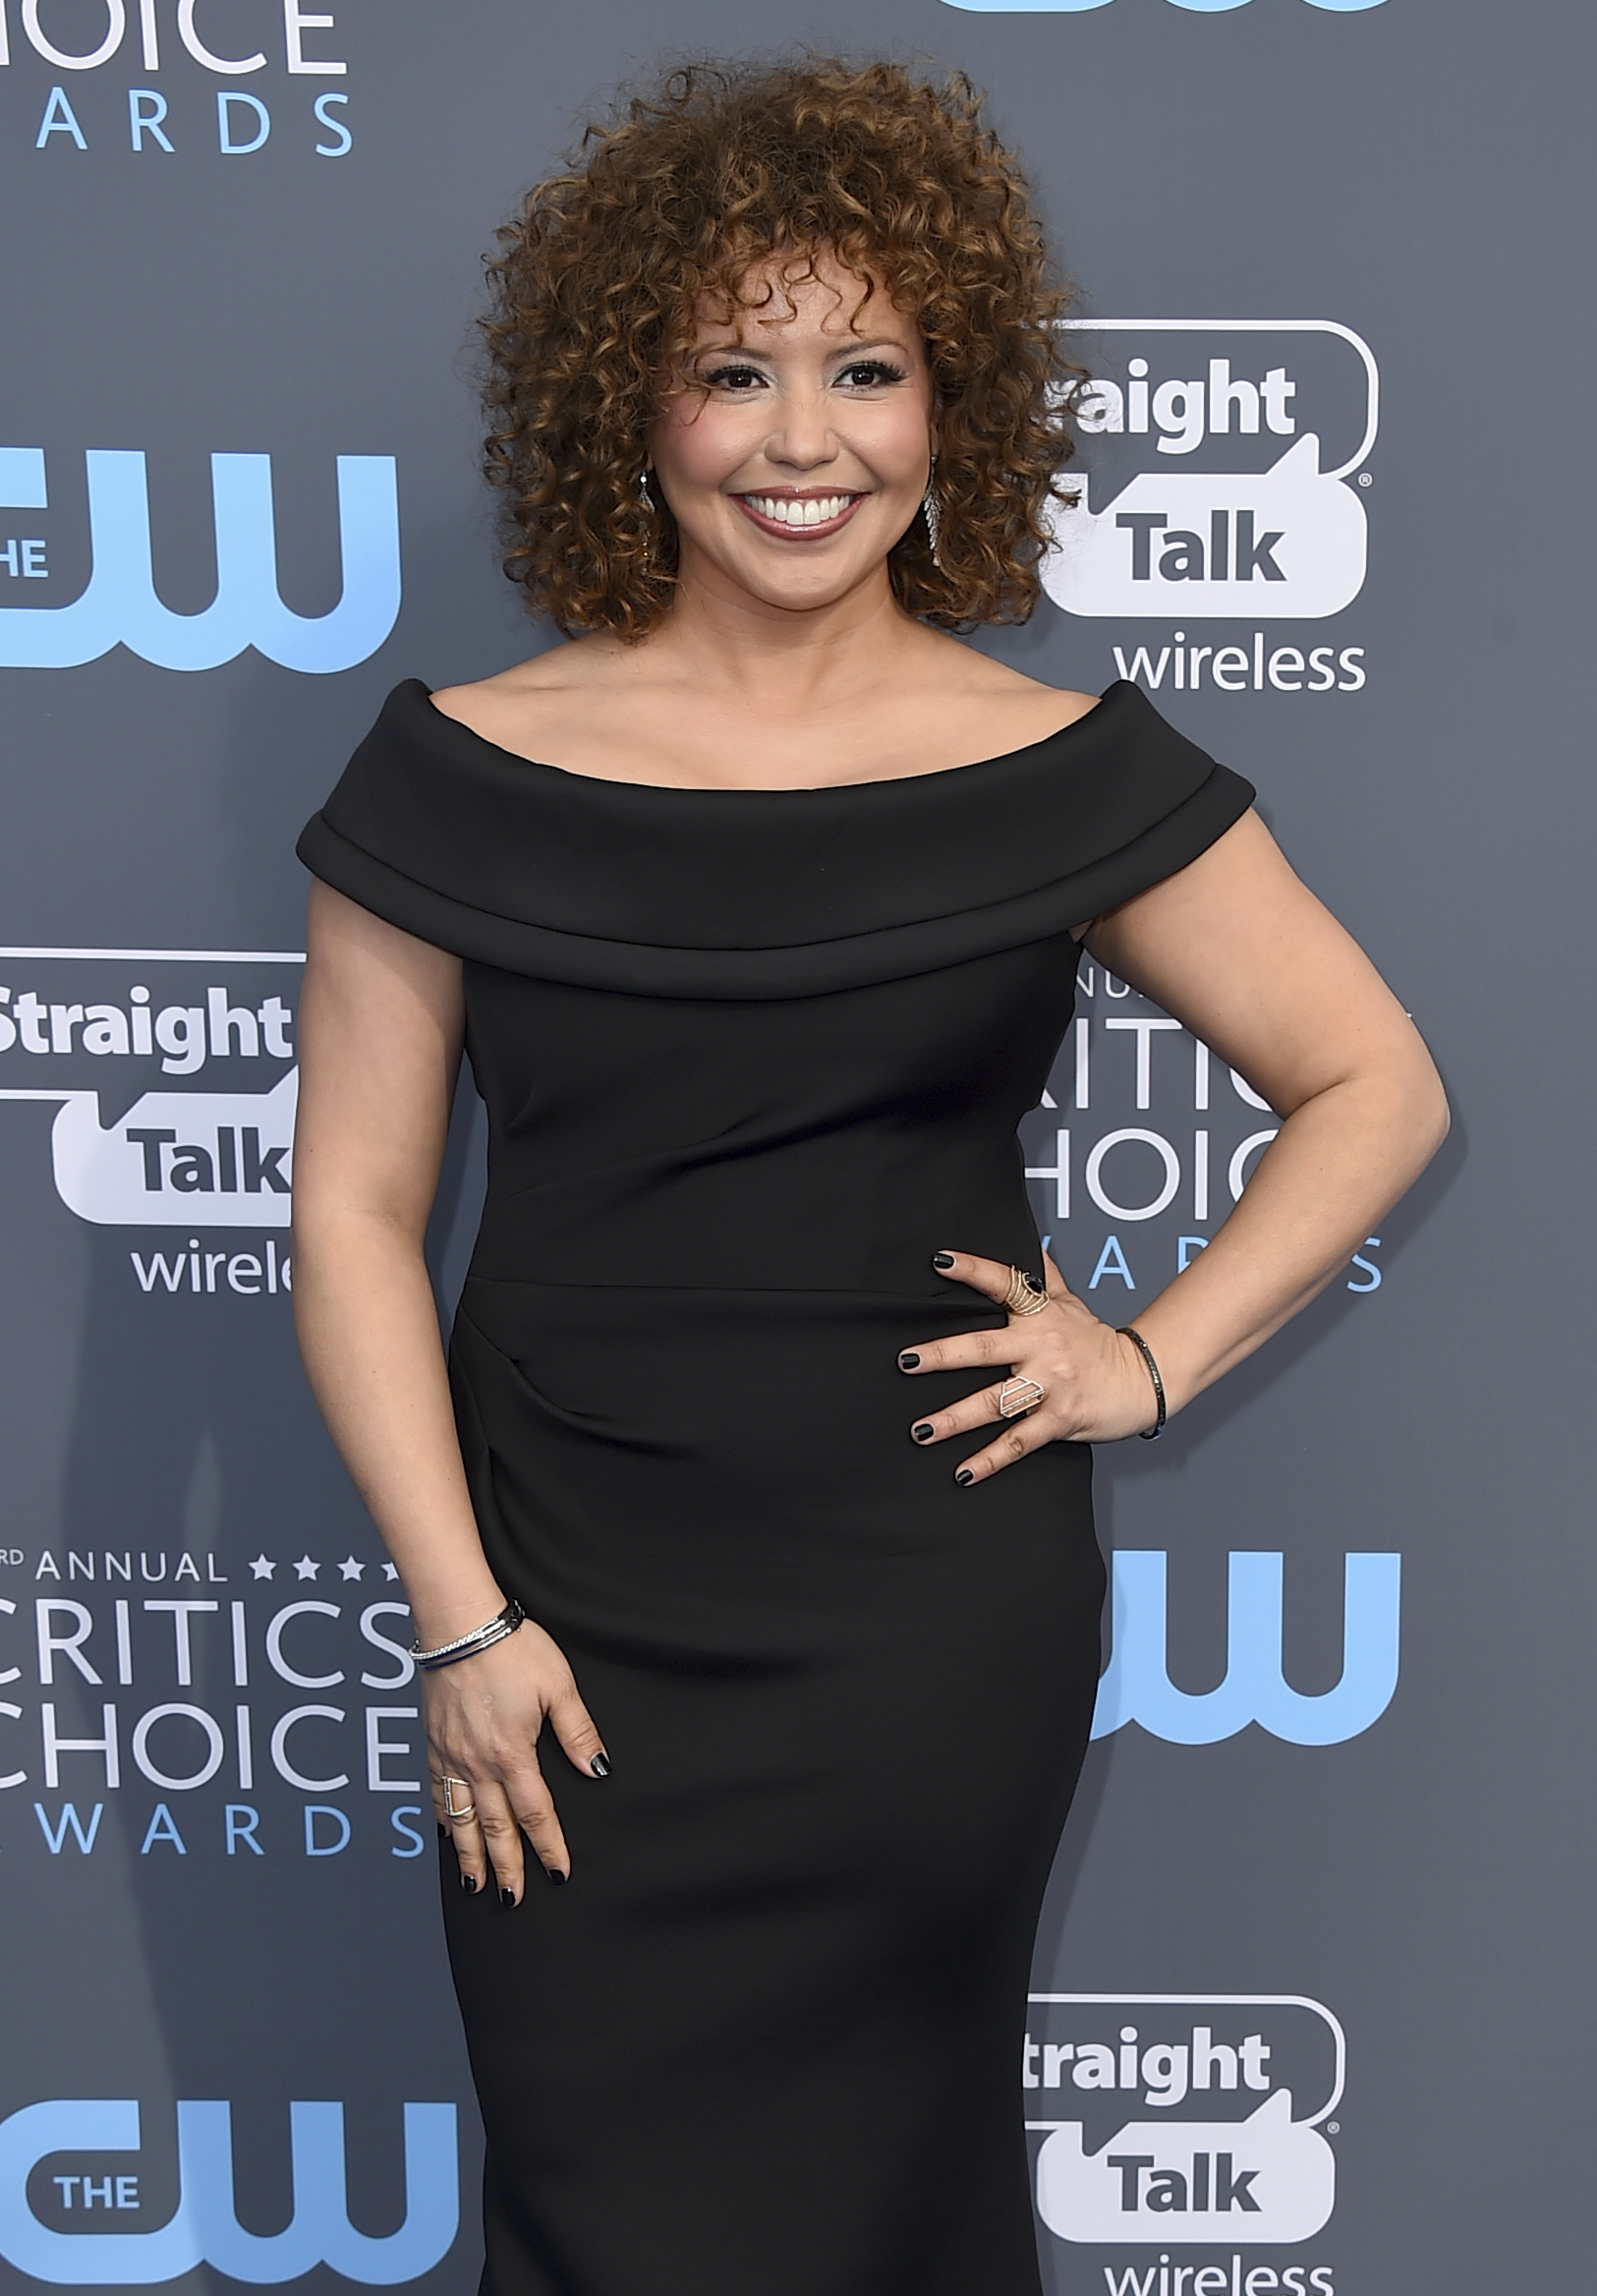 <div class='meta'><div class='origin-logo' data-origin='AP'></div><span class='caption-text' data-credit='Jordan Strauss/Invision/AP'>Justina Machado arrives at the 23rd annual Critics' Choice Awards at the Barker Hangar on Thursday, Jan. 11, 2018, in Santa Monica, Calif.</span></div>